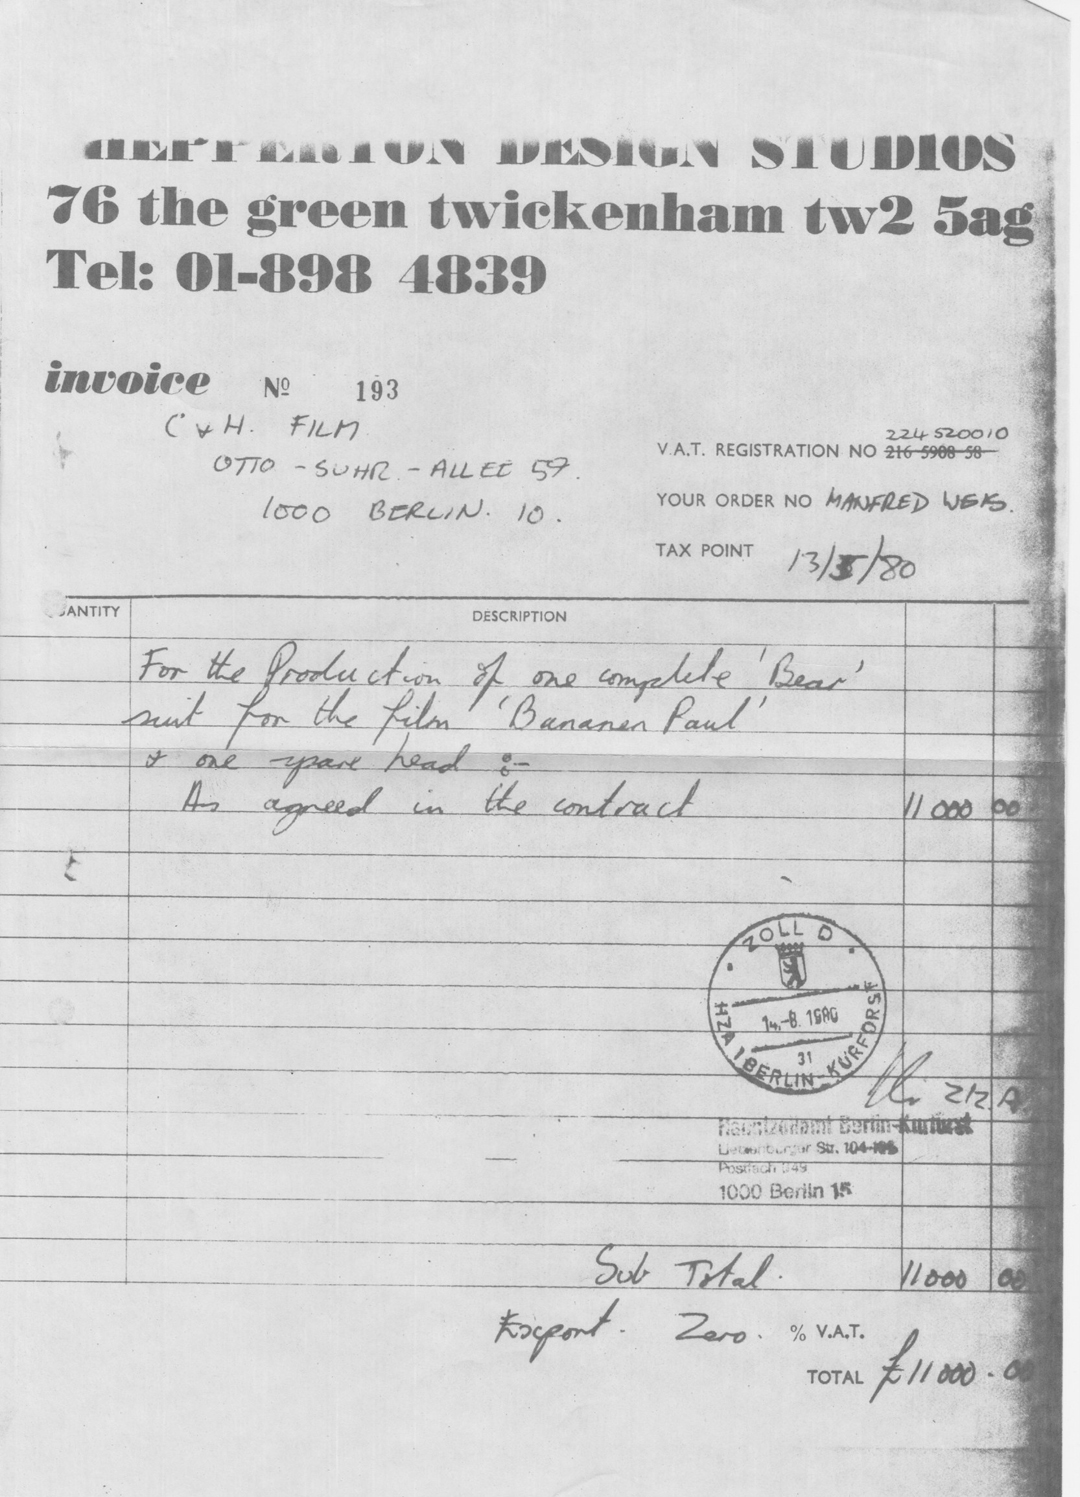 German zoll stamp - Invoice to C & H Film and custom clearance through to Berlin, before the wall came down.